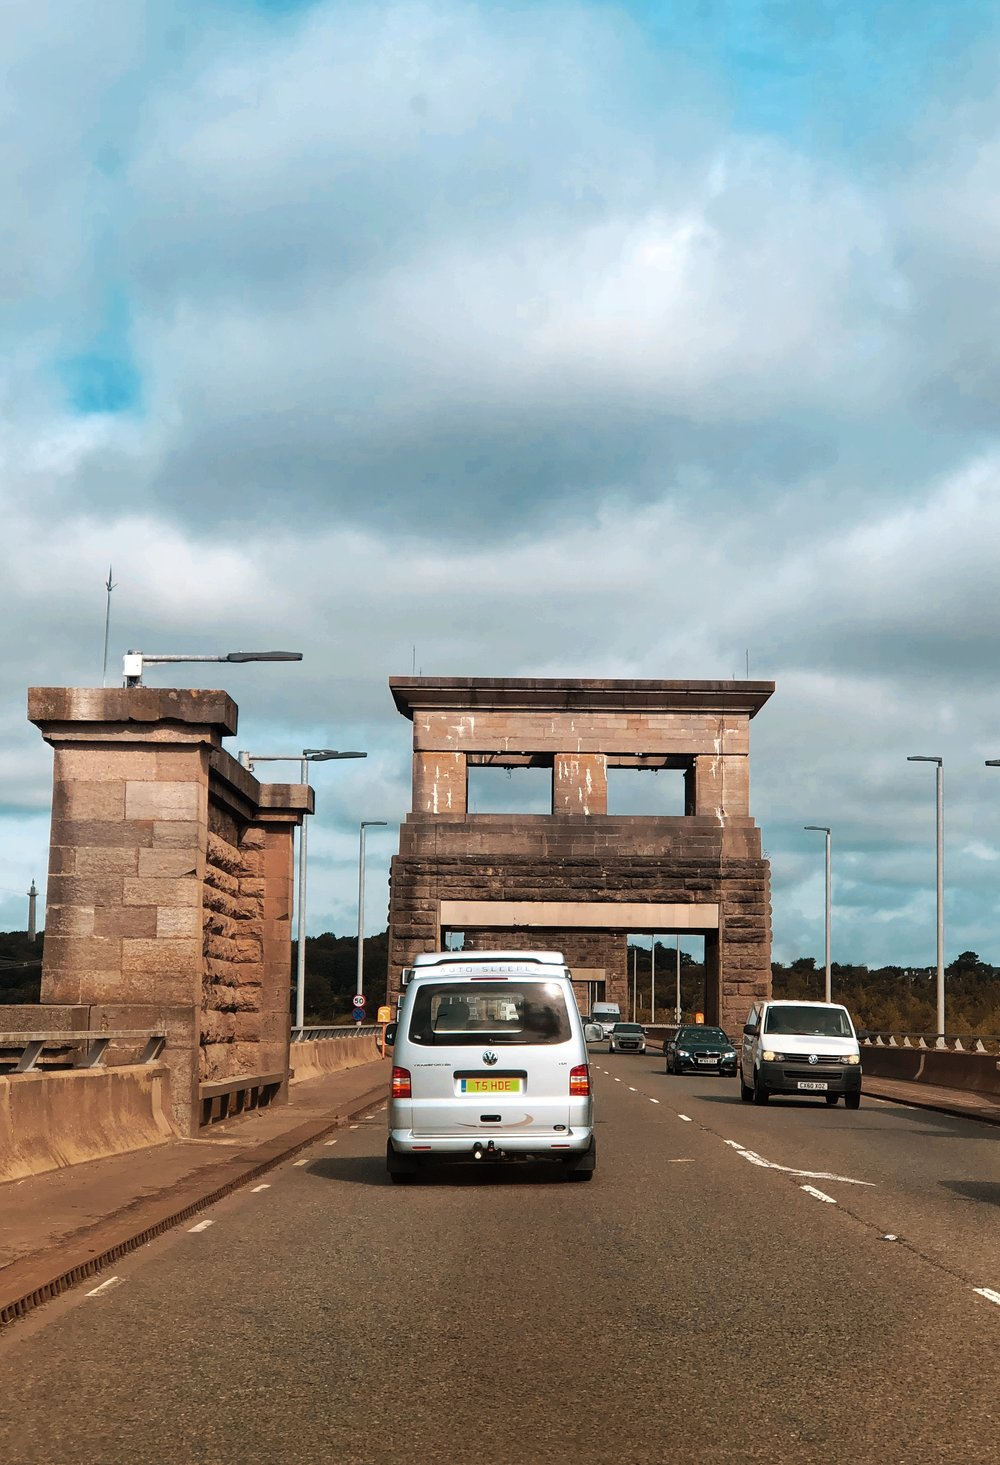 Crossing the Britannia Bridge